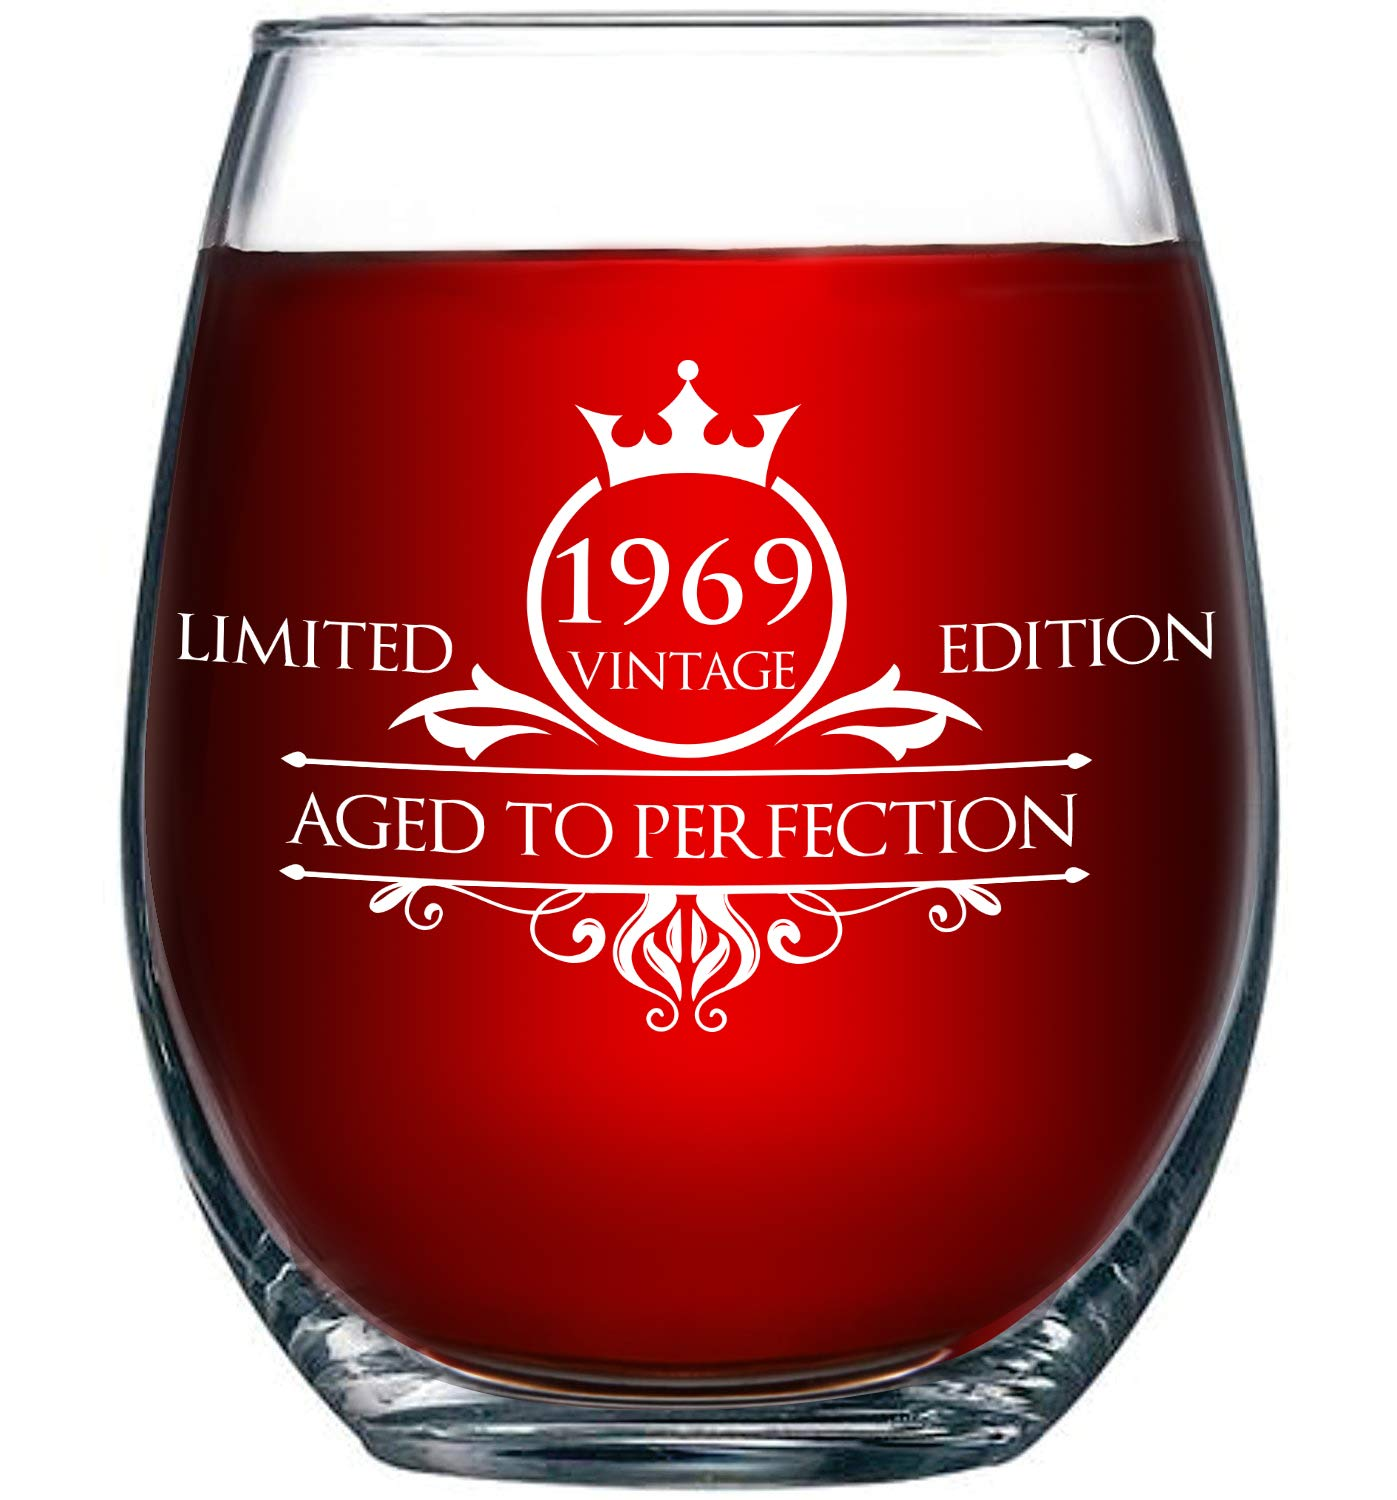 1969 50th Birthday Gifts for Women and Men Wine Glass - Funny Vintage Aged To Perfection - Anniversary Gift Ideas for Mom Dad Husband Wife - 50 Year Old Party Supplies Decorations for Him, Her - 15oz